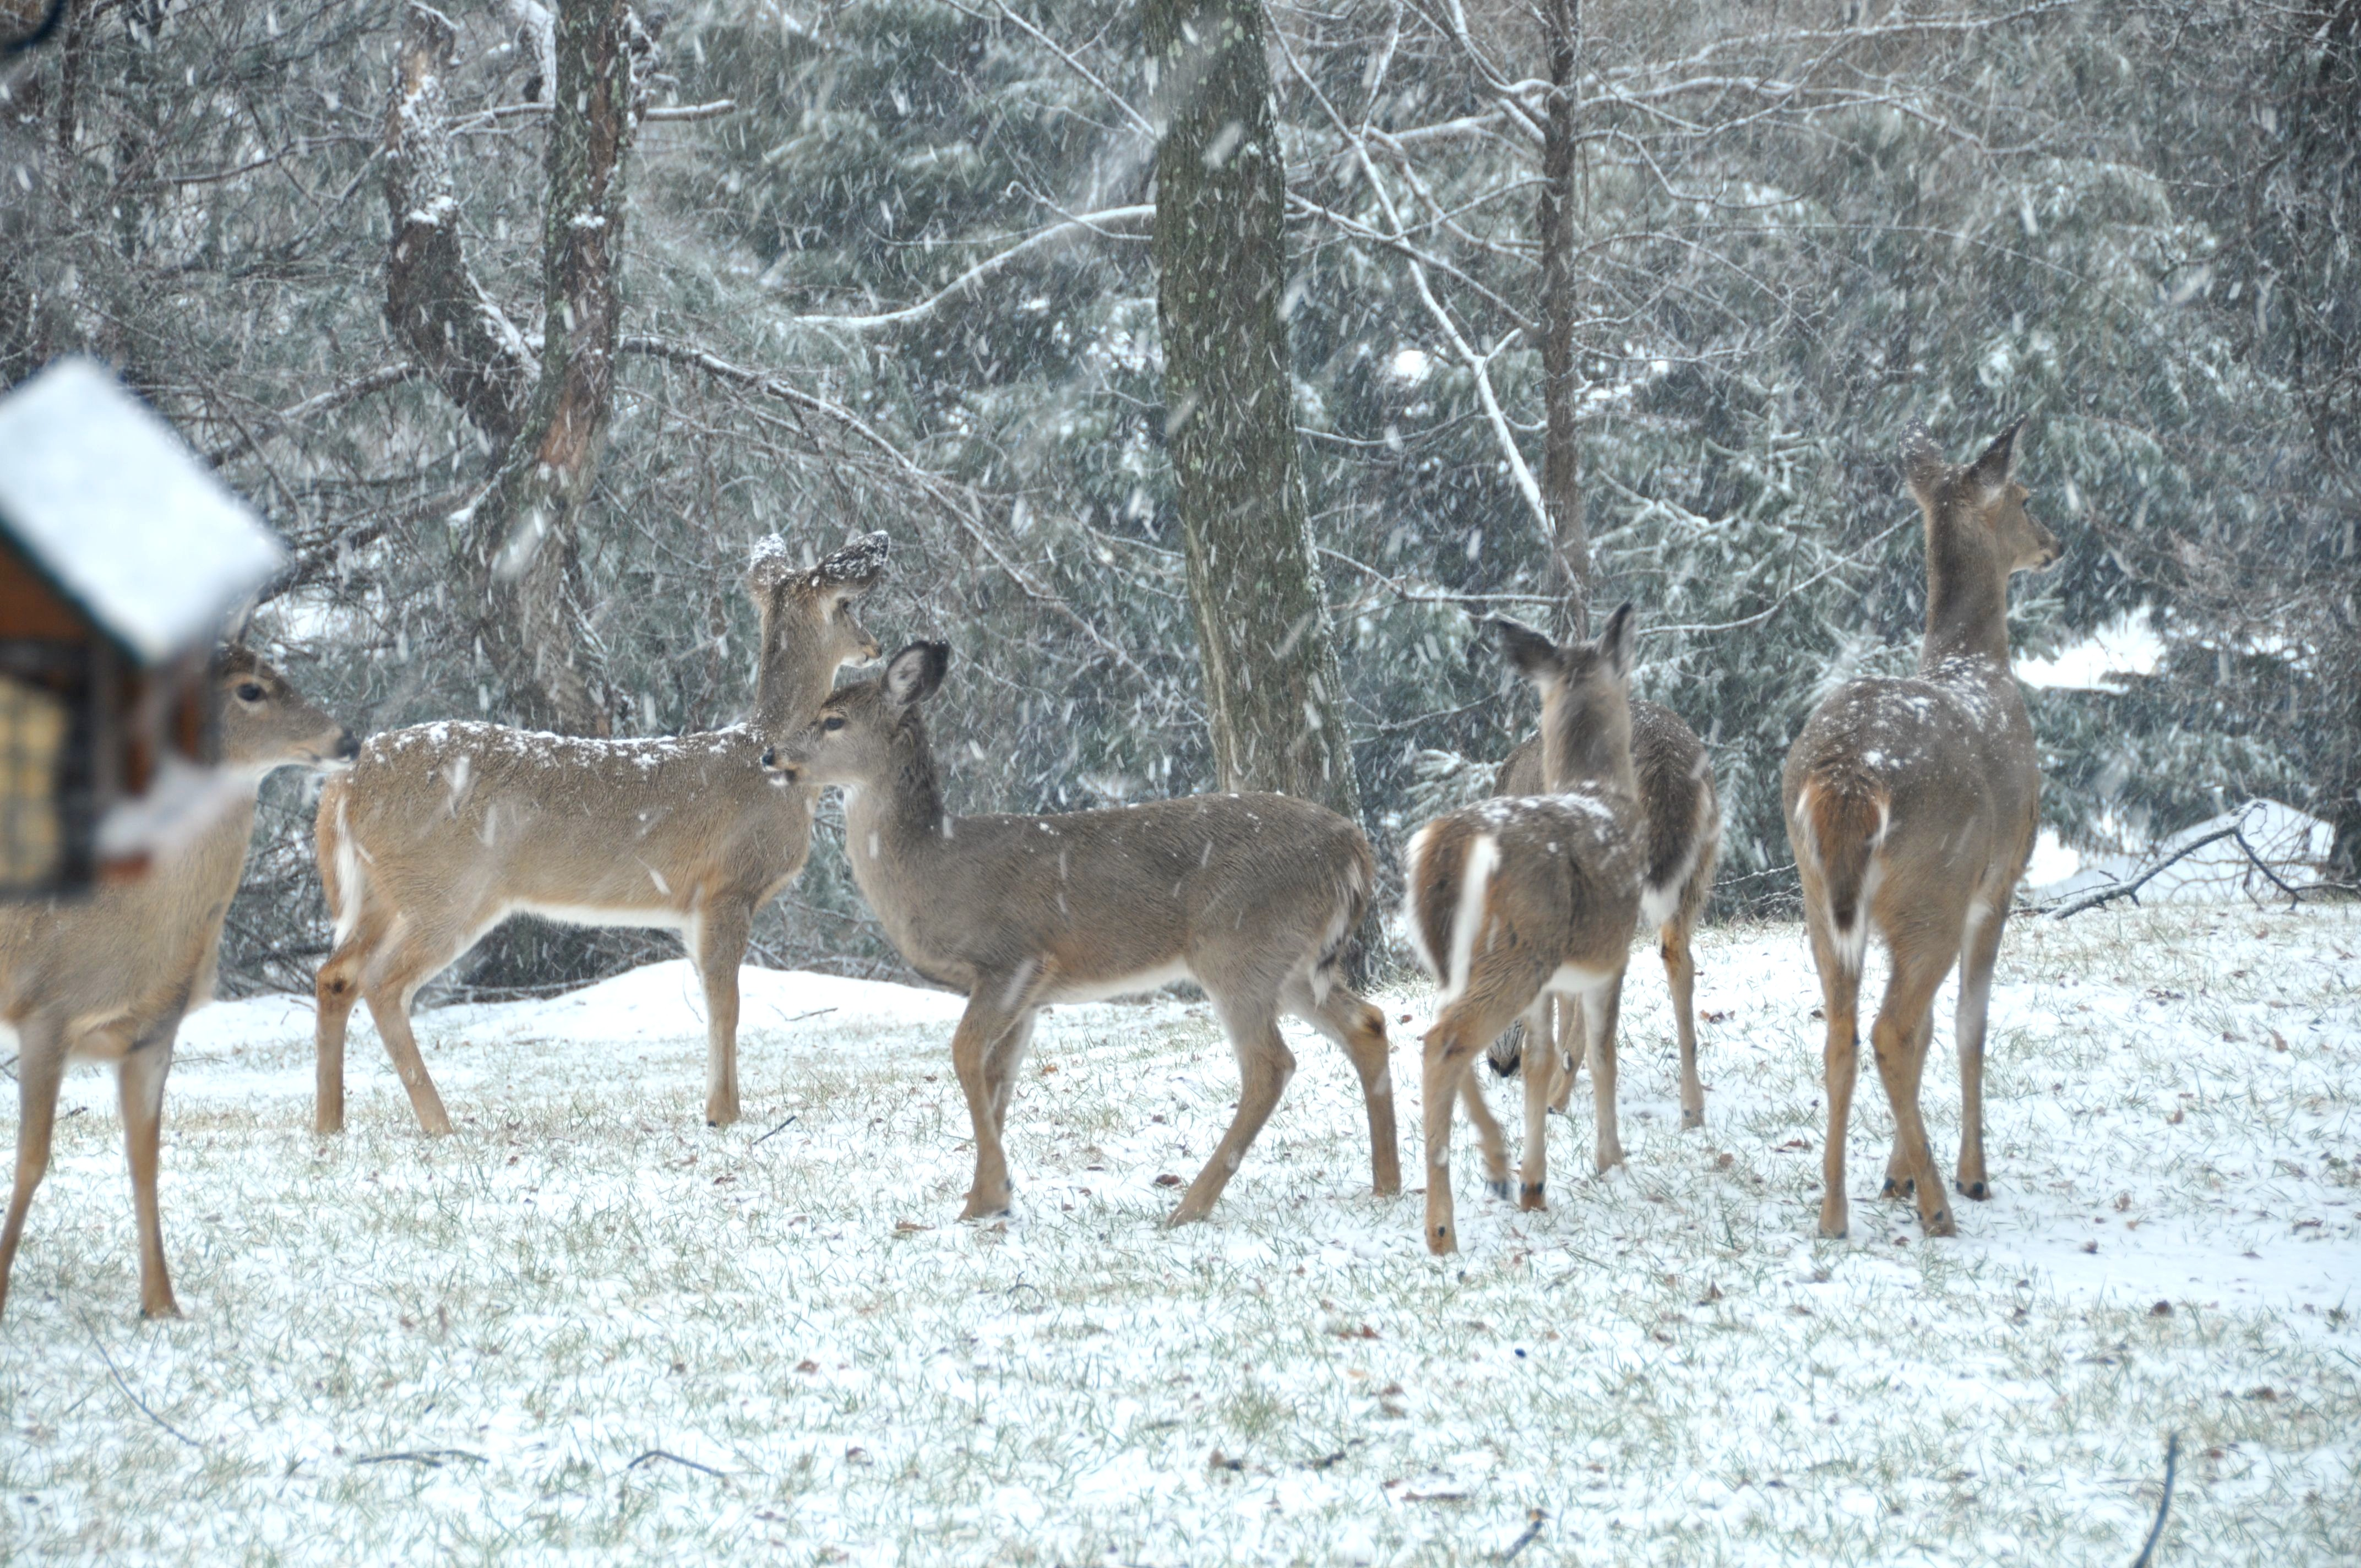 A herd of whitetail deer visit the backyard of a Maryland residence close to a forest. Photo by EarthSky.